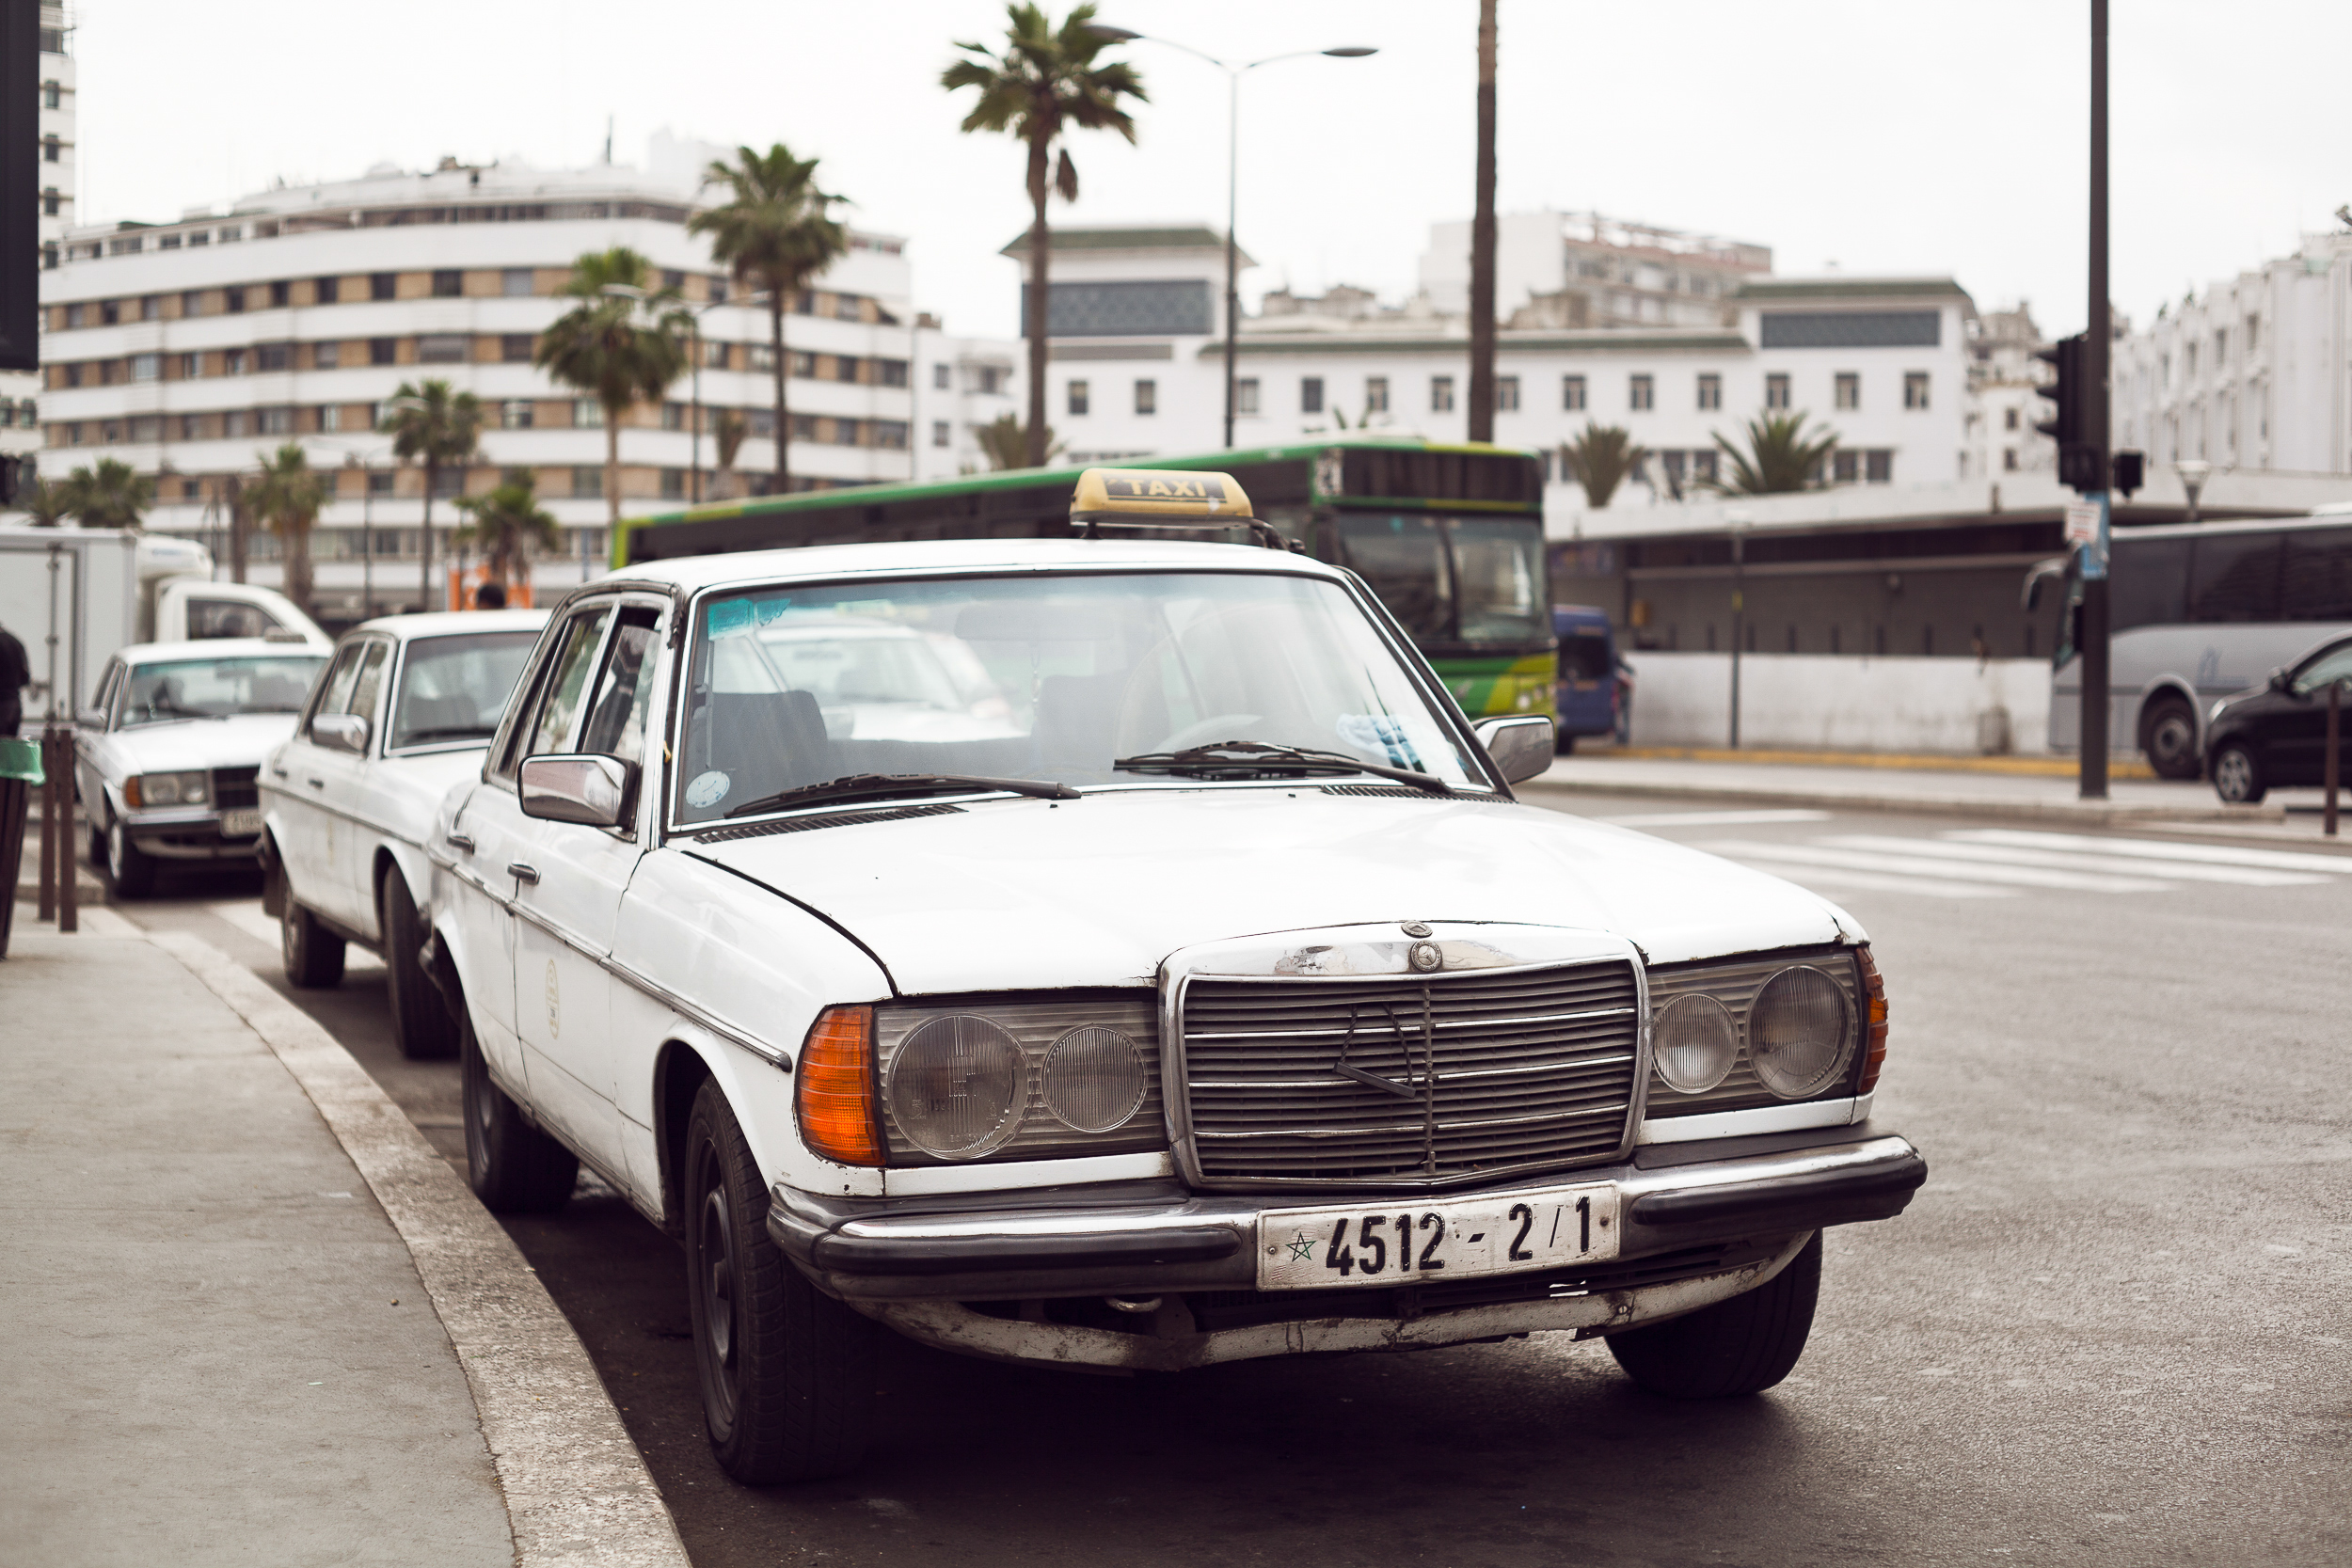 Chacon Images_Casablanca_Travel_WEB_-19.jpg